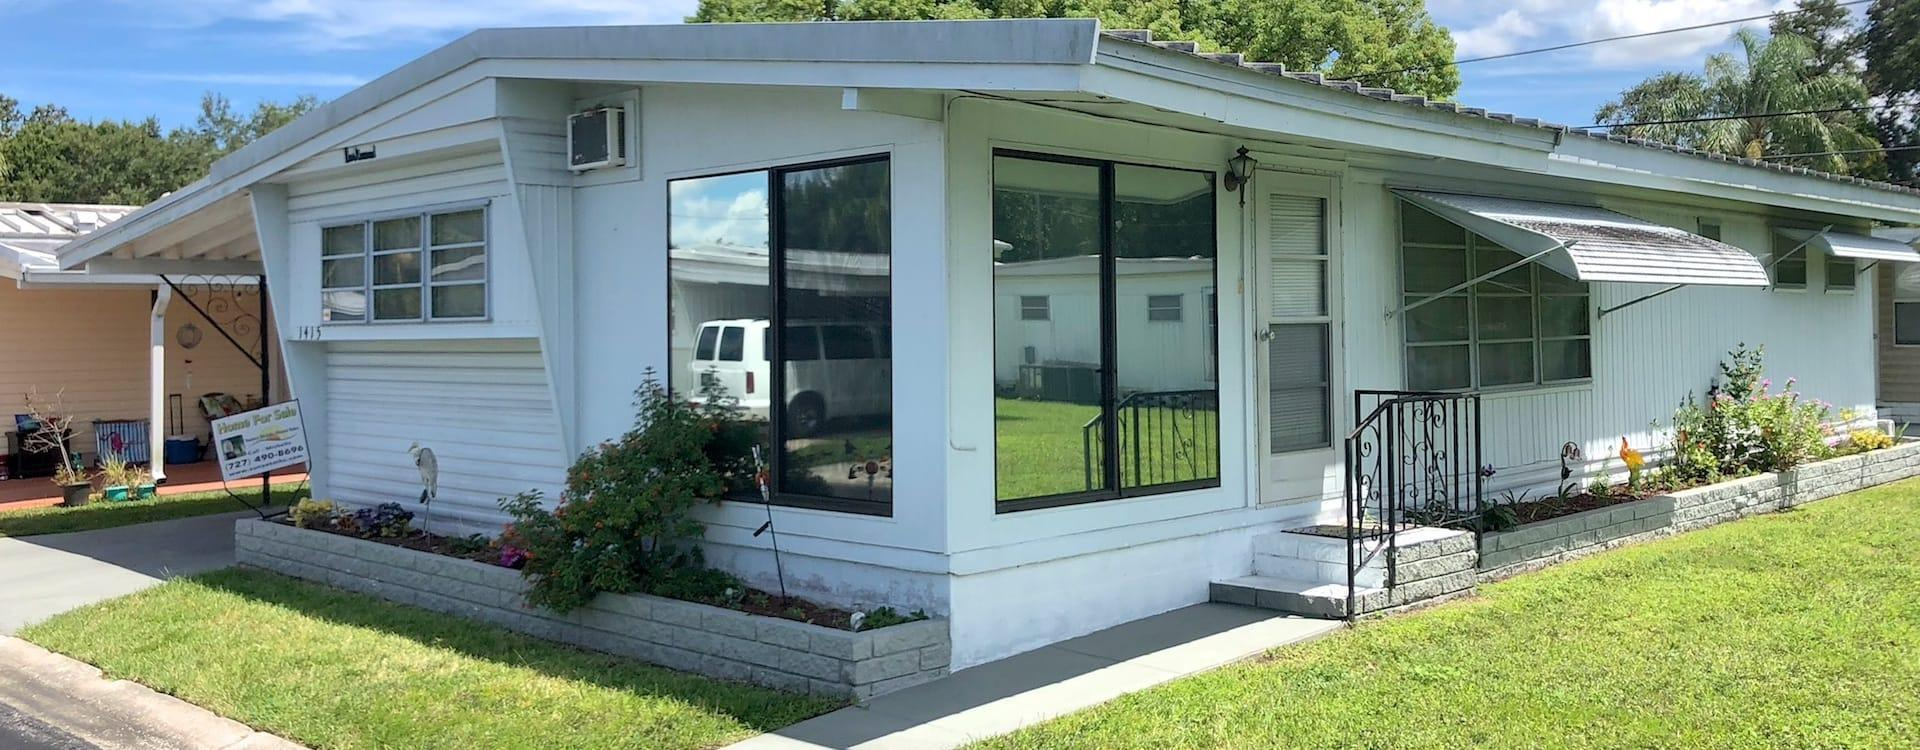 mobile-home-for-sale-20180807-001-Wide Pictures Of Twin Lakes Mobile Home Park Clearwater Florida on mobile homes in florida, hotels clearwater florida, dentists clearwater florida, night clubs clearwater florida, capitol theatre clearwater florida, retirement parks in florida, photographers clearwater florida, interior design clearwater florida, mobile home 55 communities florida, credit unions clearwater florida, golf courses clearwater florida, trailer parks in florida, tanning salons clearwater florida, real estate clearwater florida,